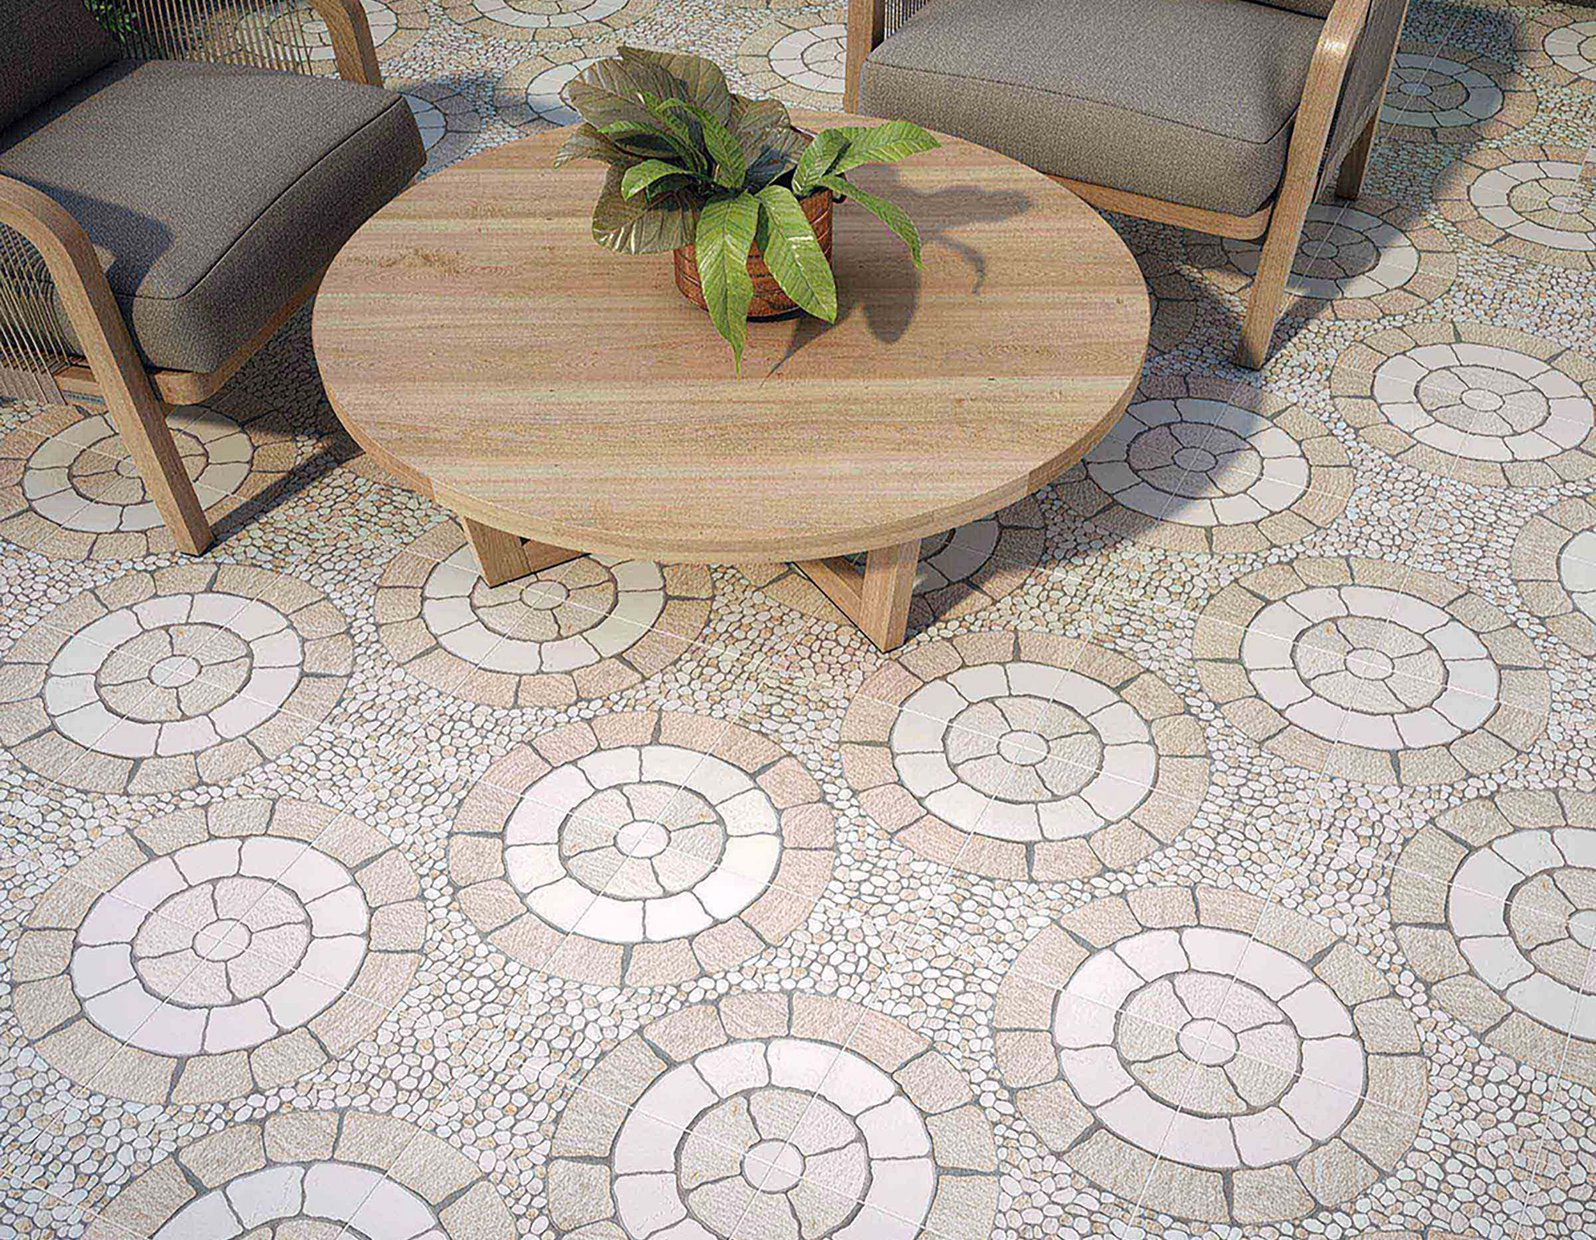 ceramic floor collection White tiles Modern style Outdoor